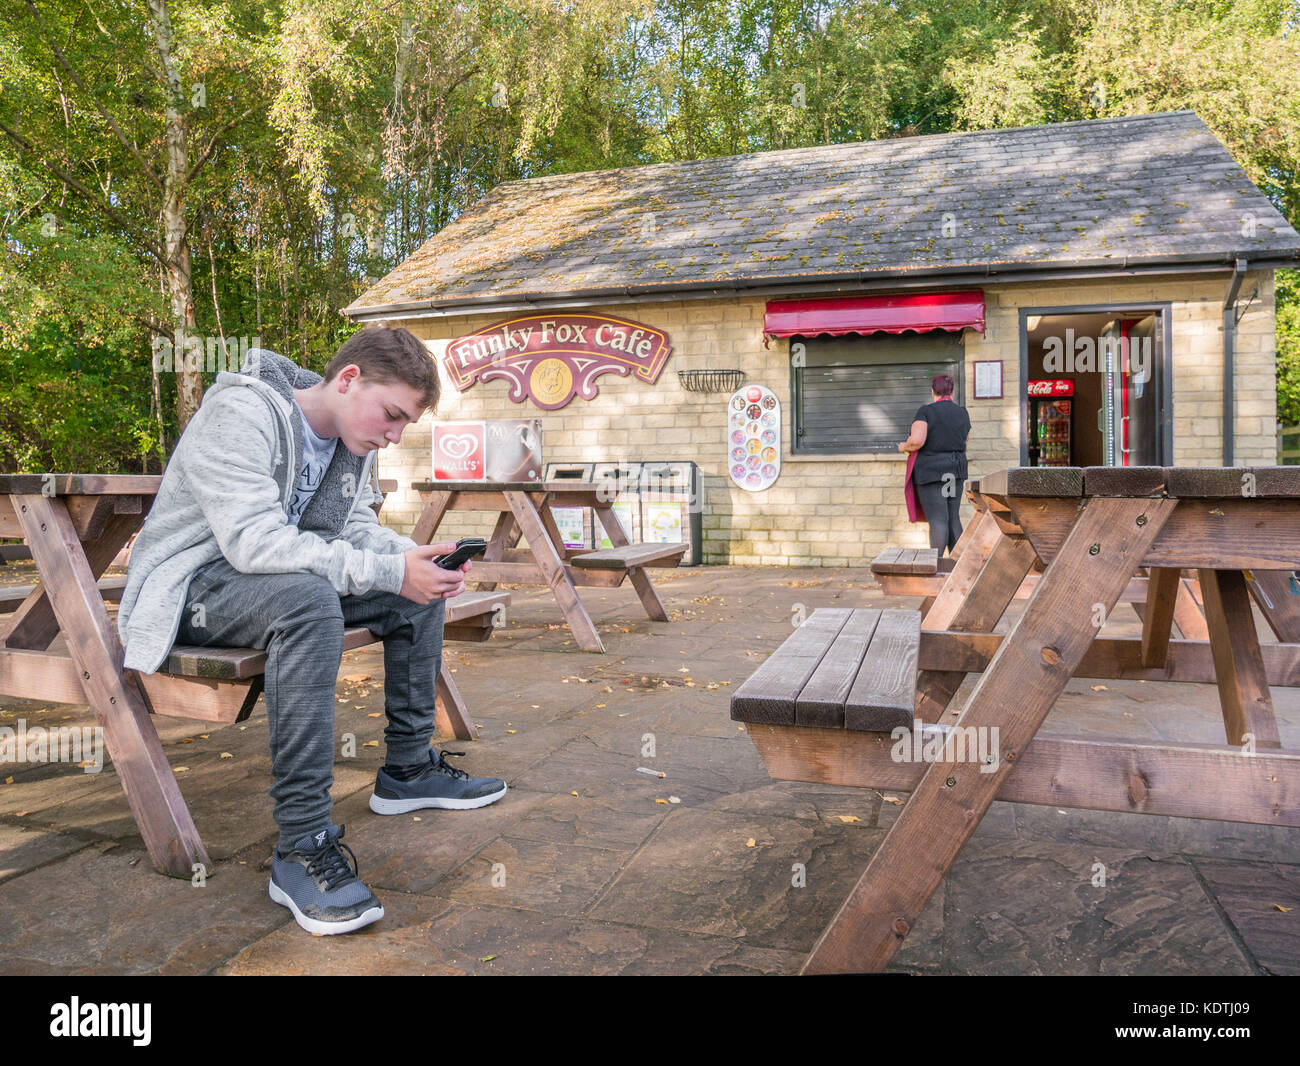 Young male teenager engrossed in his phone while sittig on a bench outside the Funky Fox cafe at Sykes Lane, Rutland - Stock Image